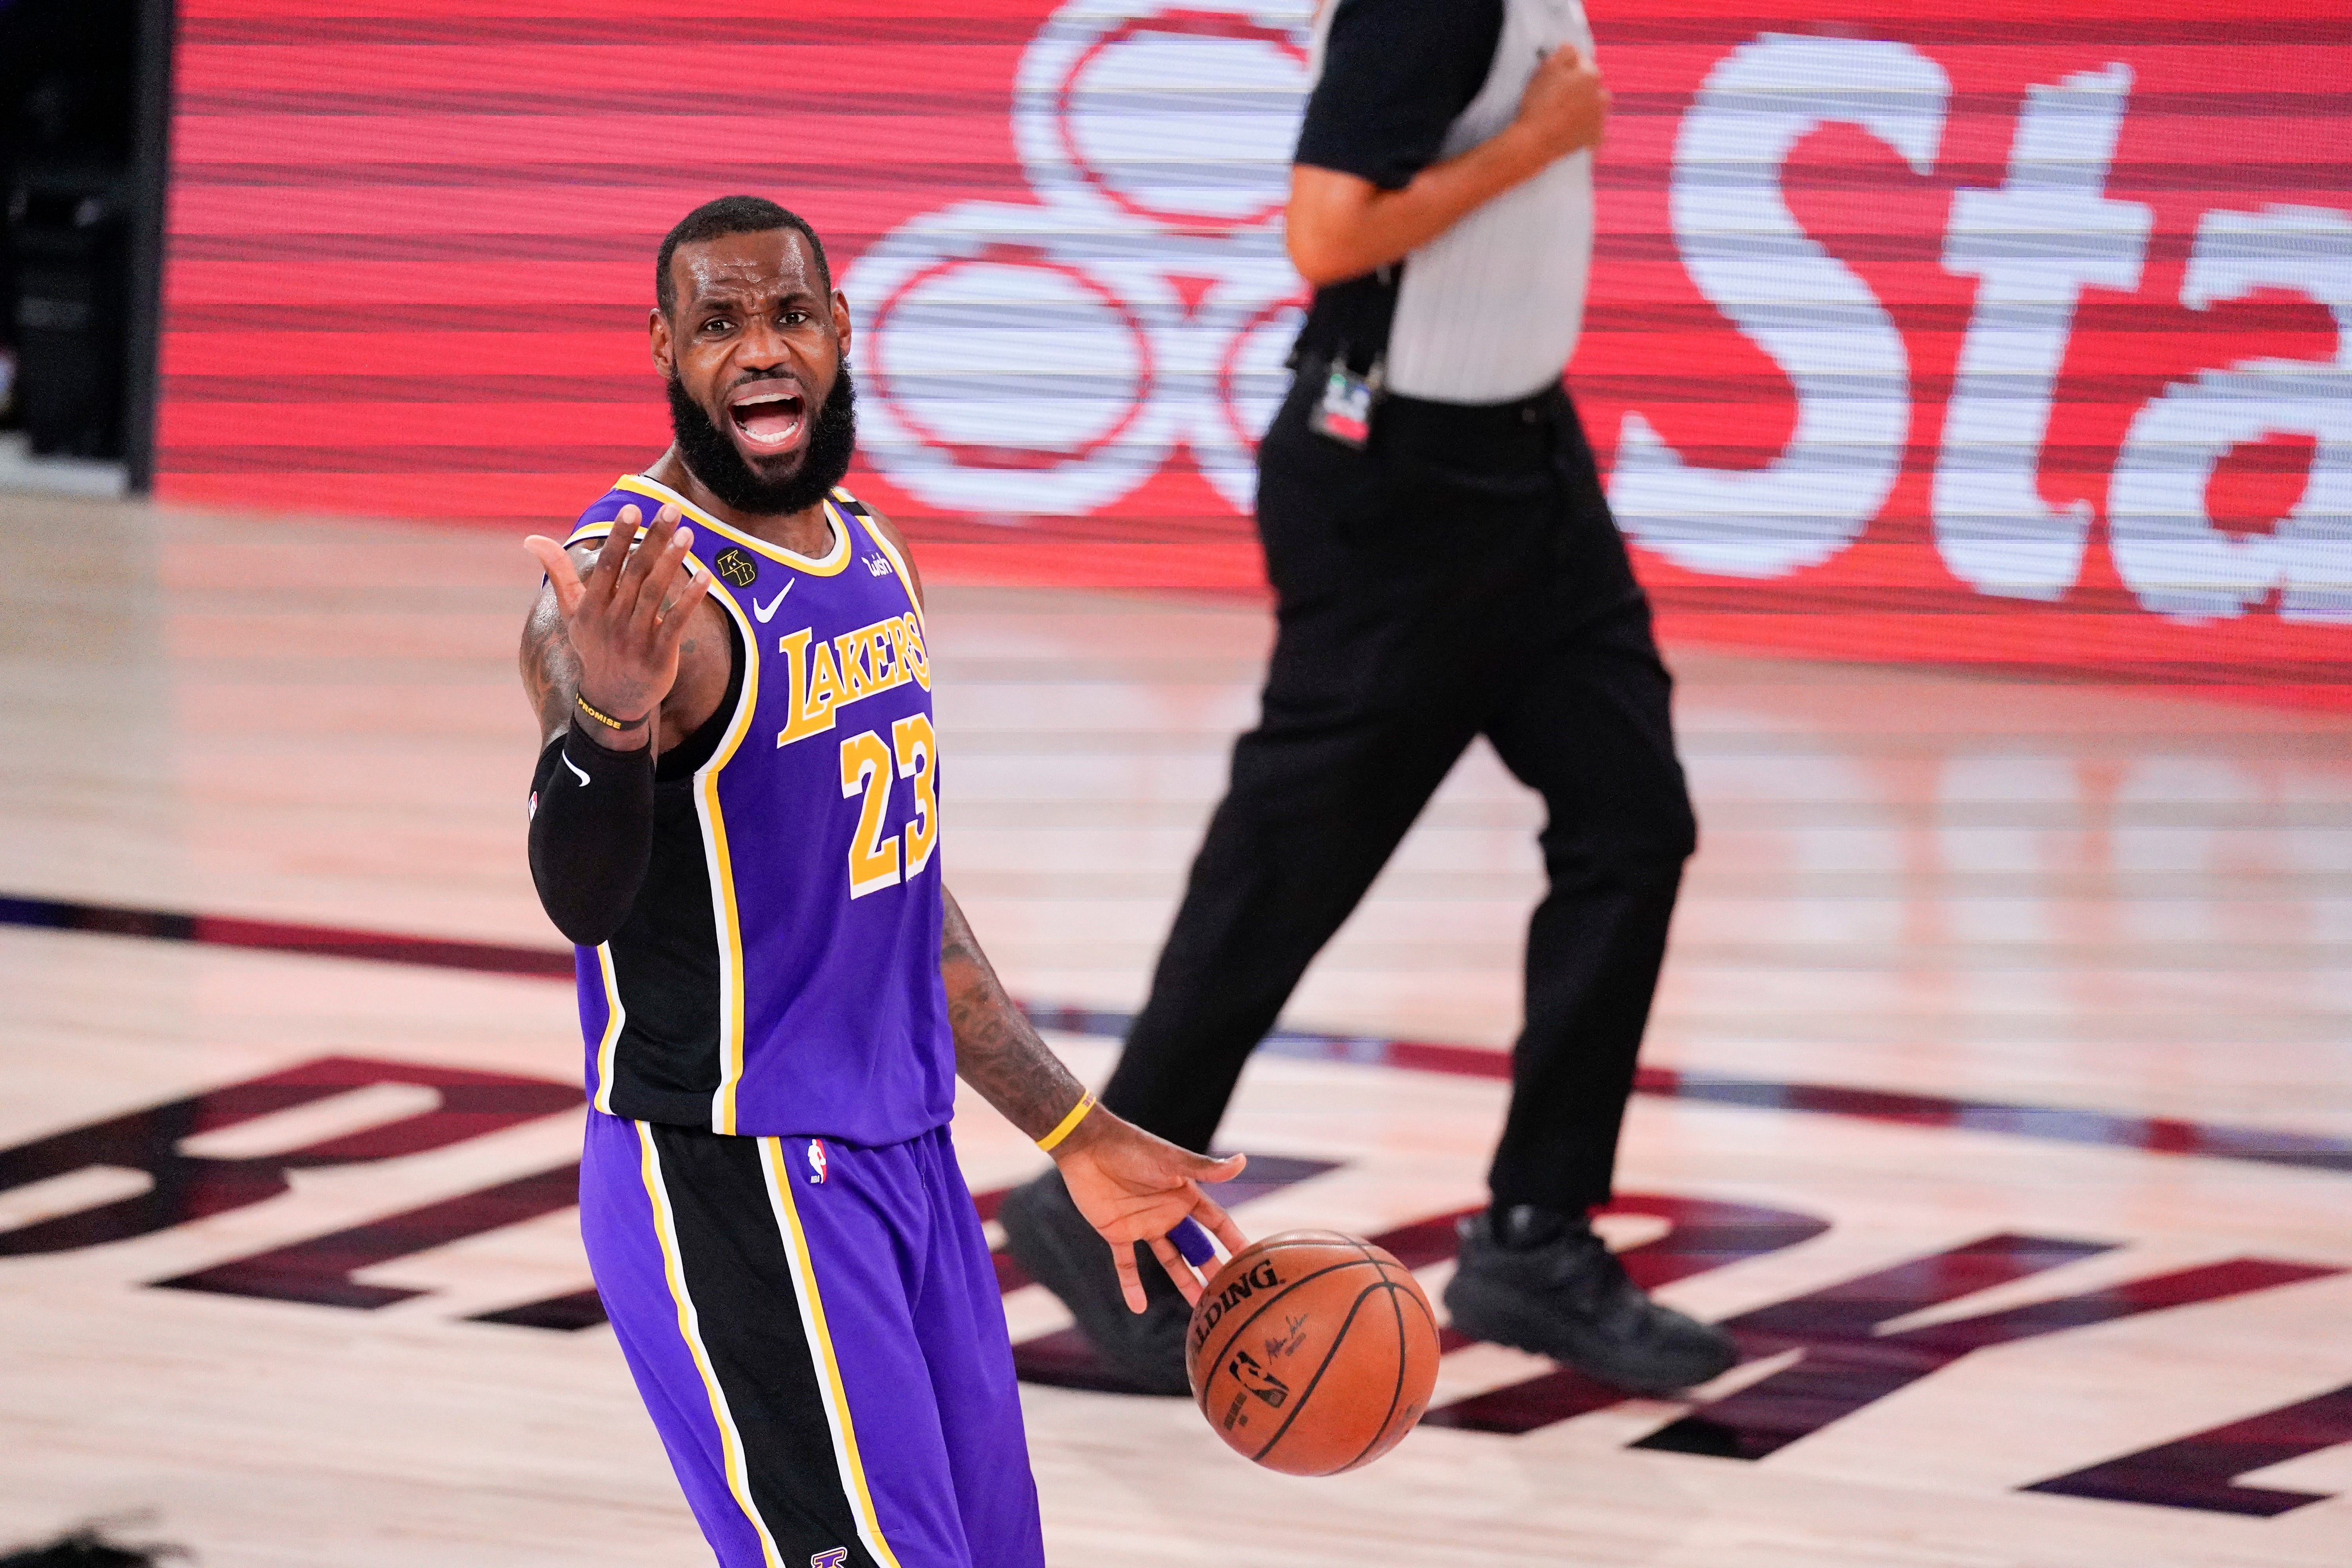 Saturday S Nba Playoffs James Lakers Beat Nuggets In Game 5 To Reach Nba Finals